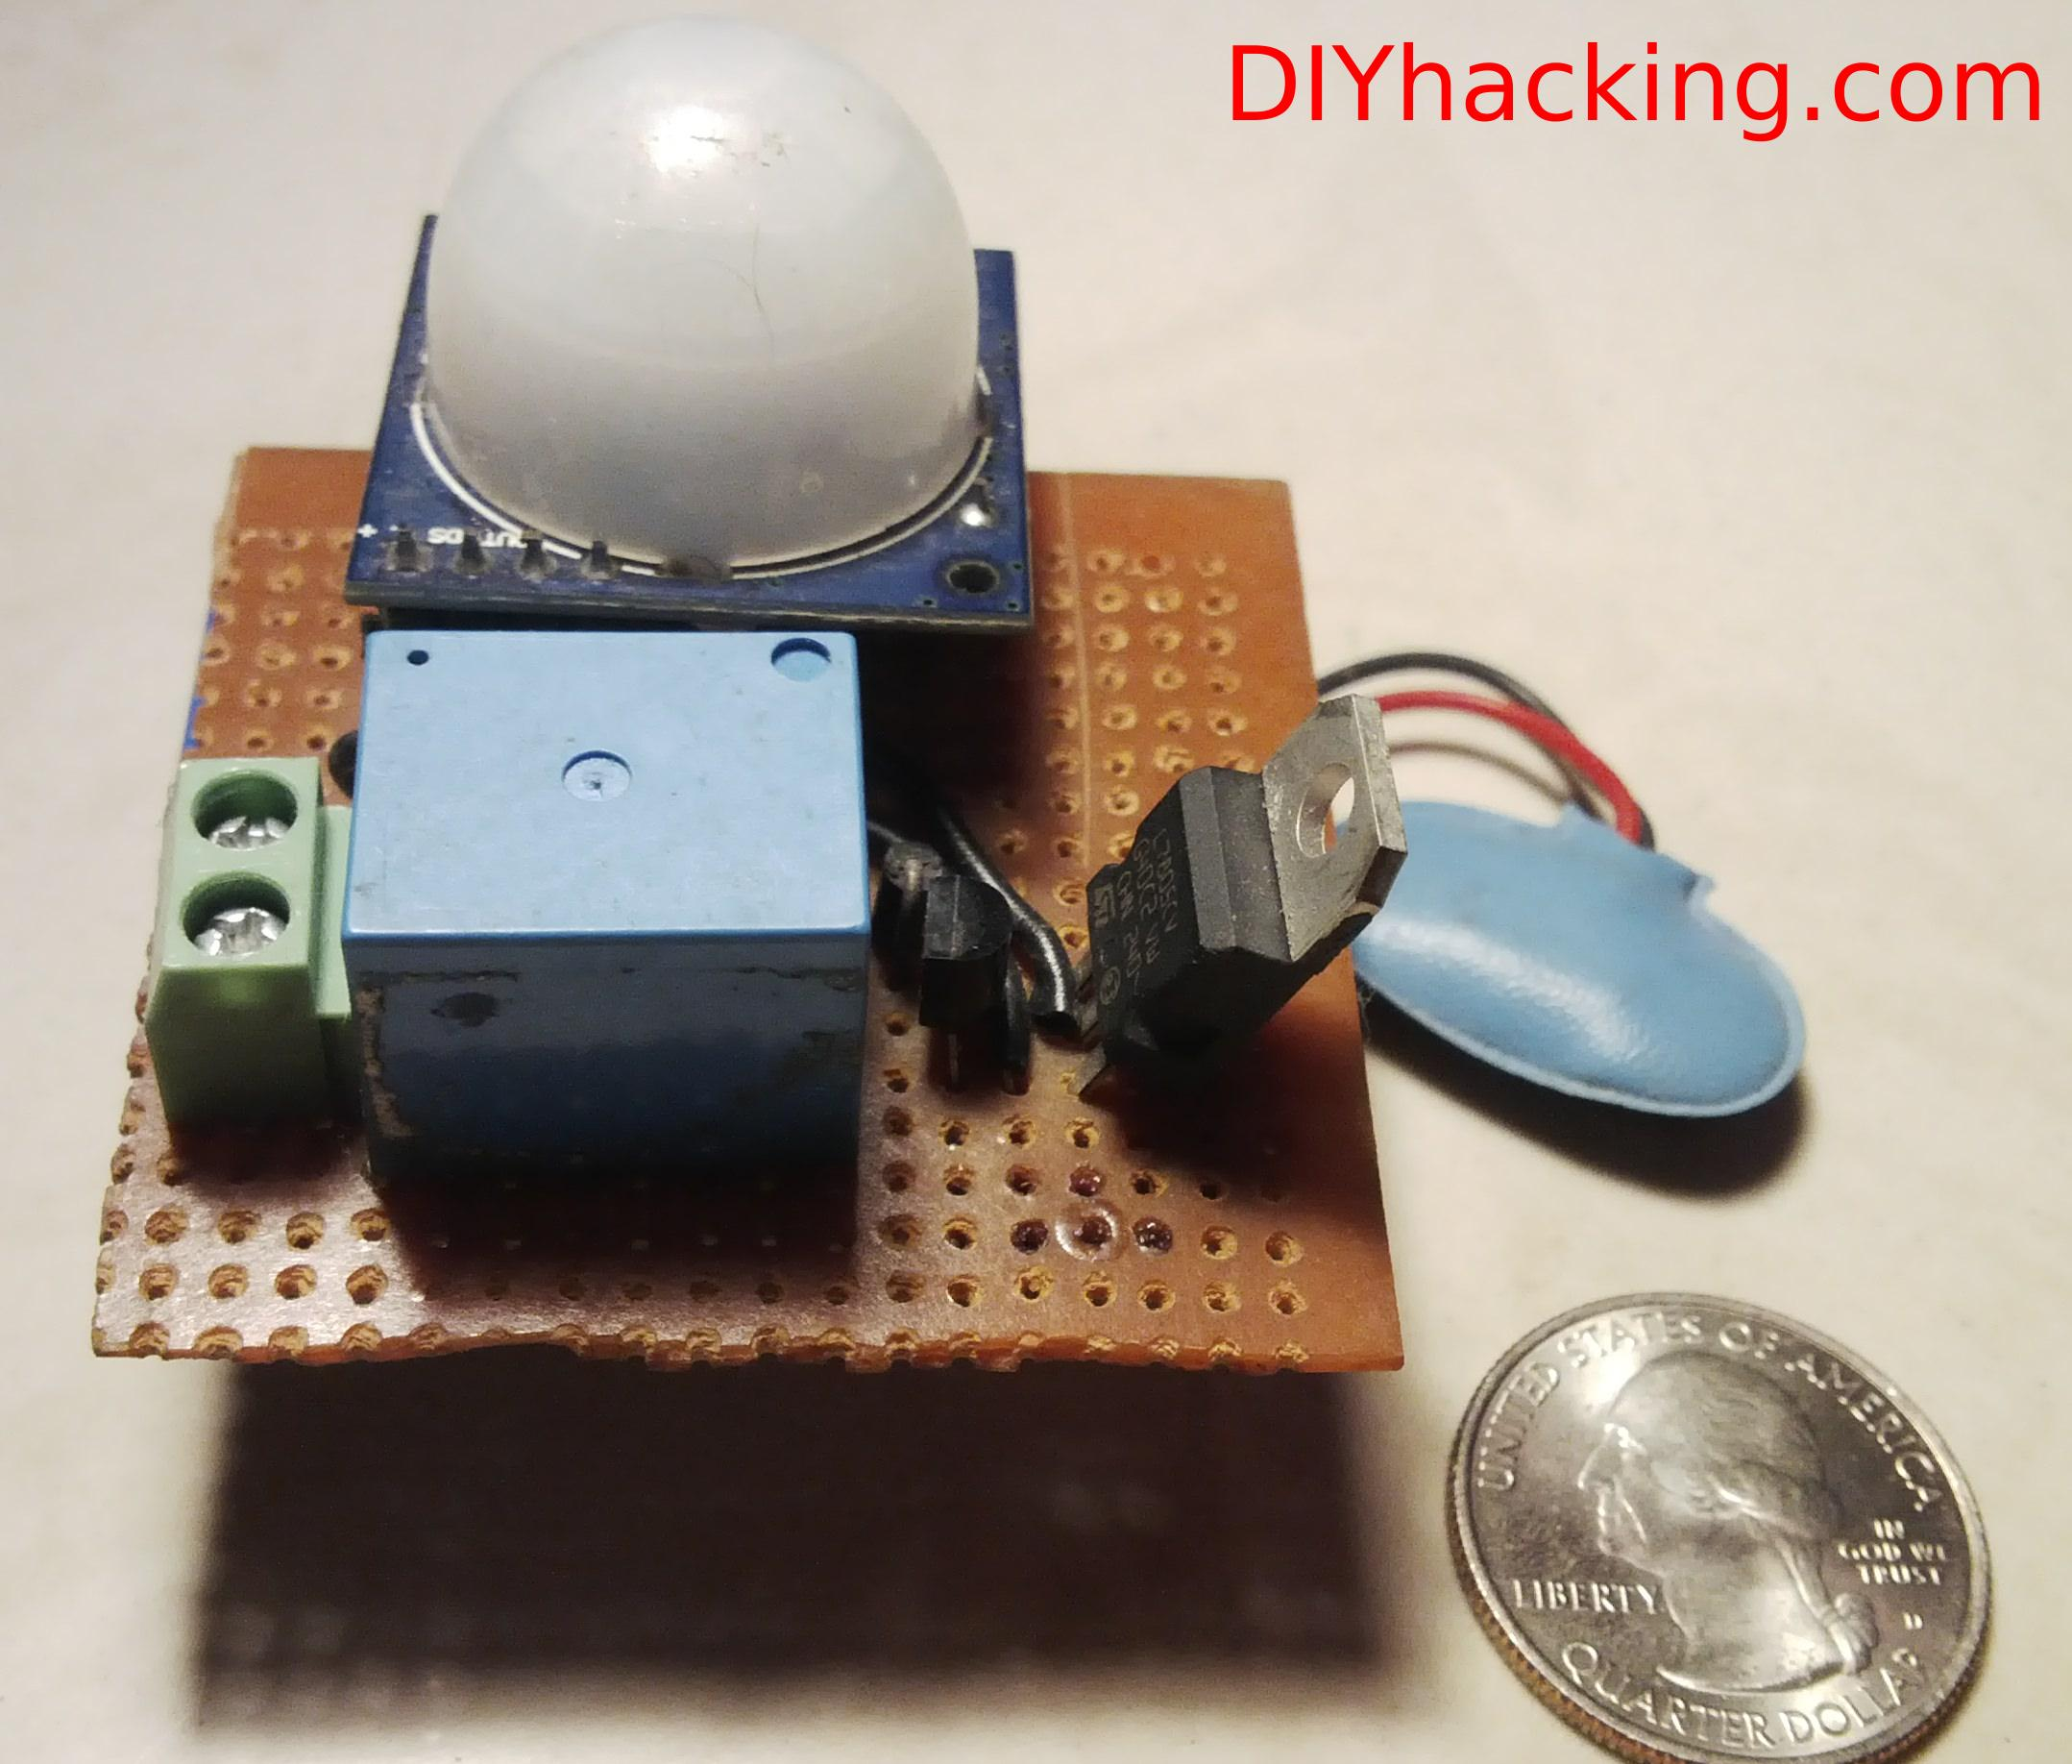 November 2014 Page 2 Celebratelife24x7 Buildelectroniccircuitscom Was To Inspire People Build Stuff Pir Motion Sensor Tutorial Diy Hacking